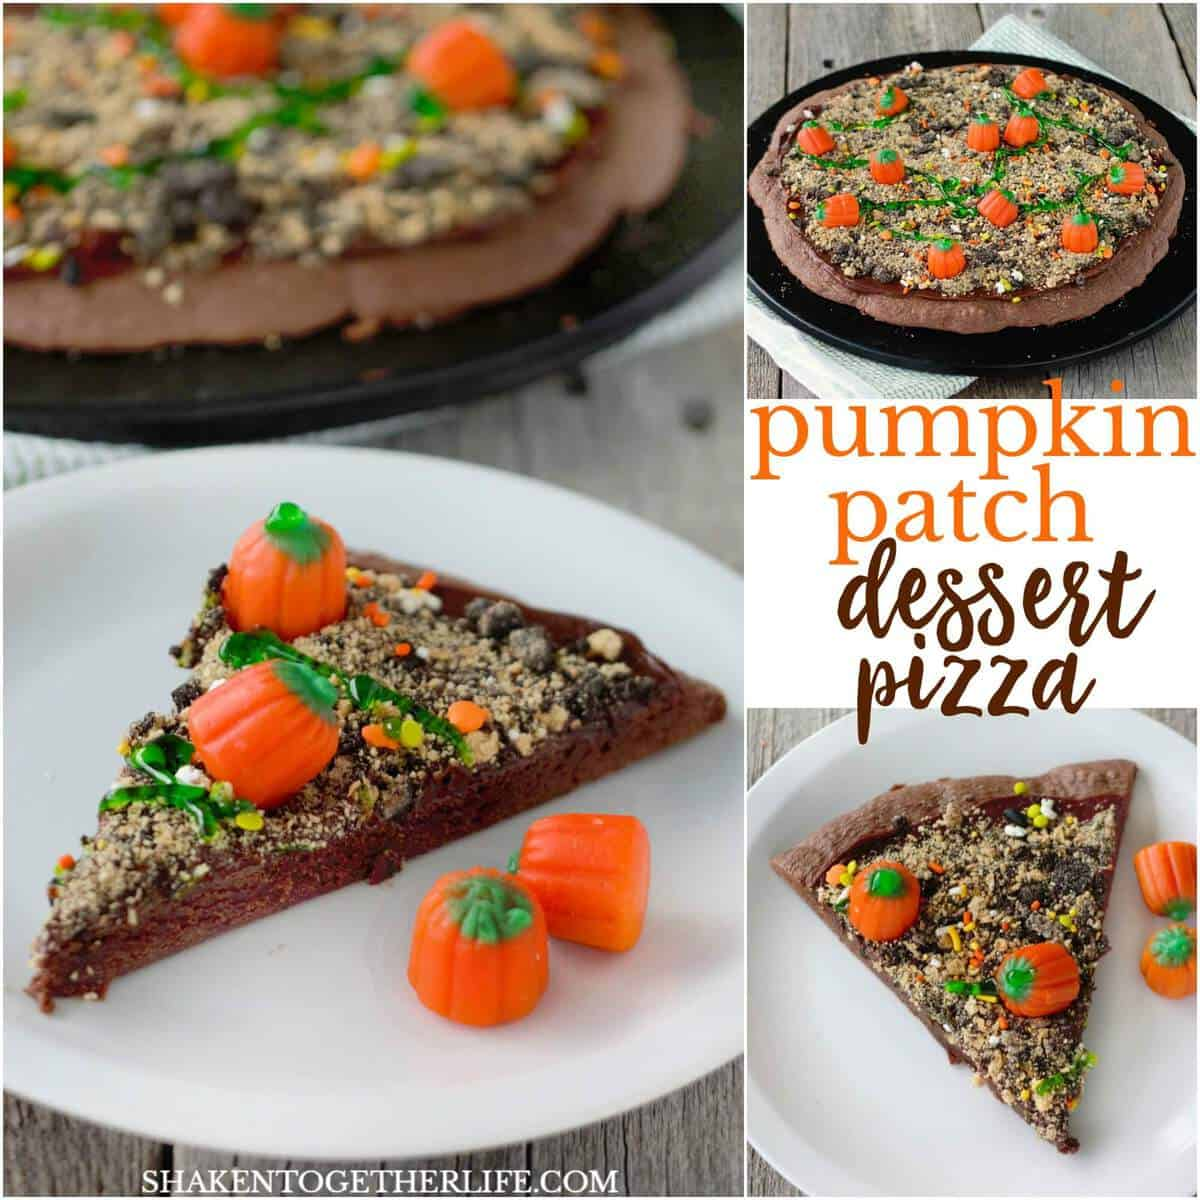 Make a chocolatey Pumpkin Patch Dessert Pizza for Fall! It's easy and simply delicious! I mean, who doesn't like a brownie crust, chocolate frosting, crumbled cookies and candy pumpkins?!